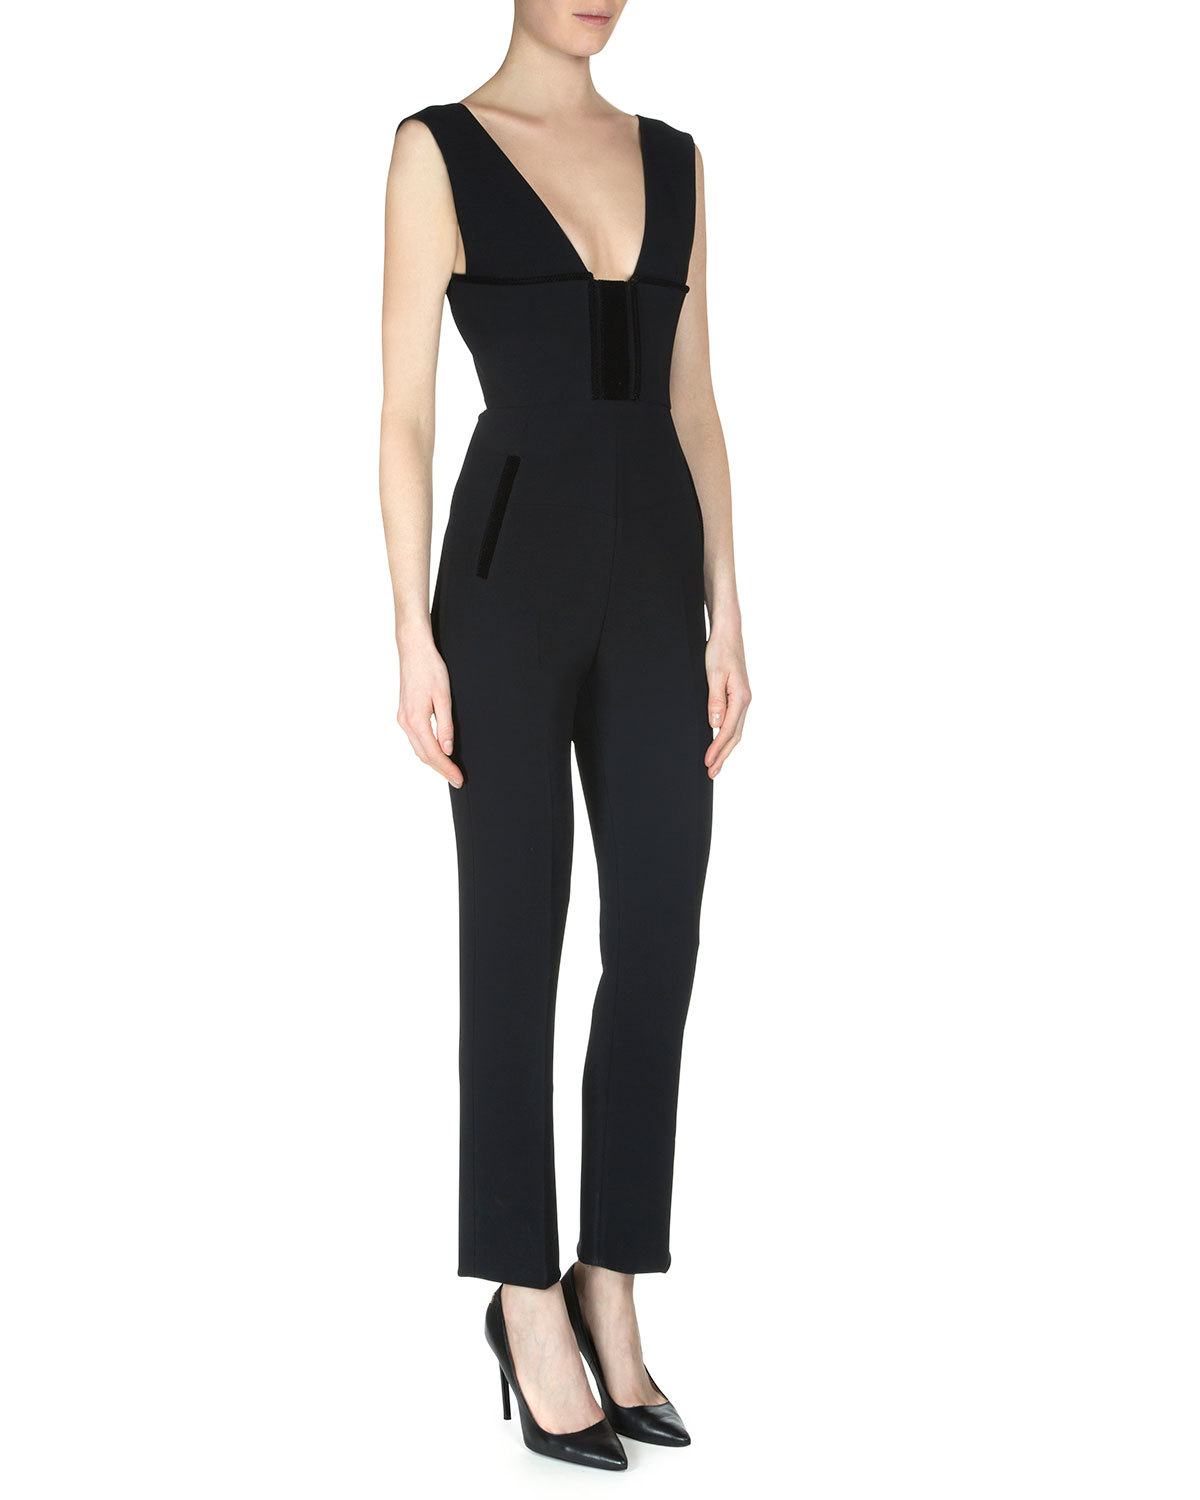 Black Jumpsuits For Women 2017 Short Rompers Womens